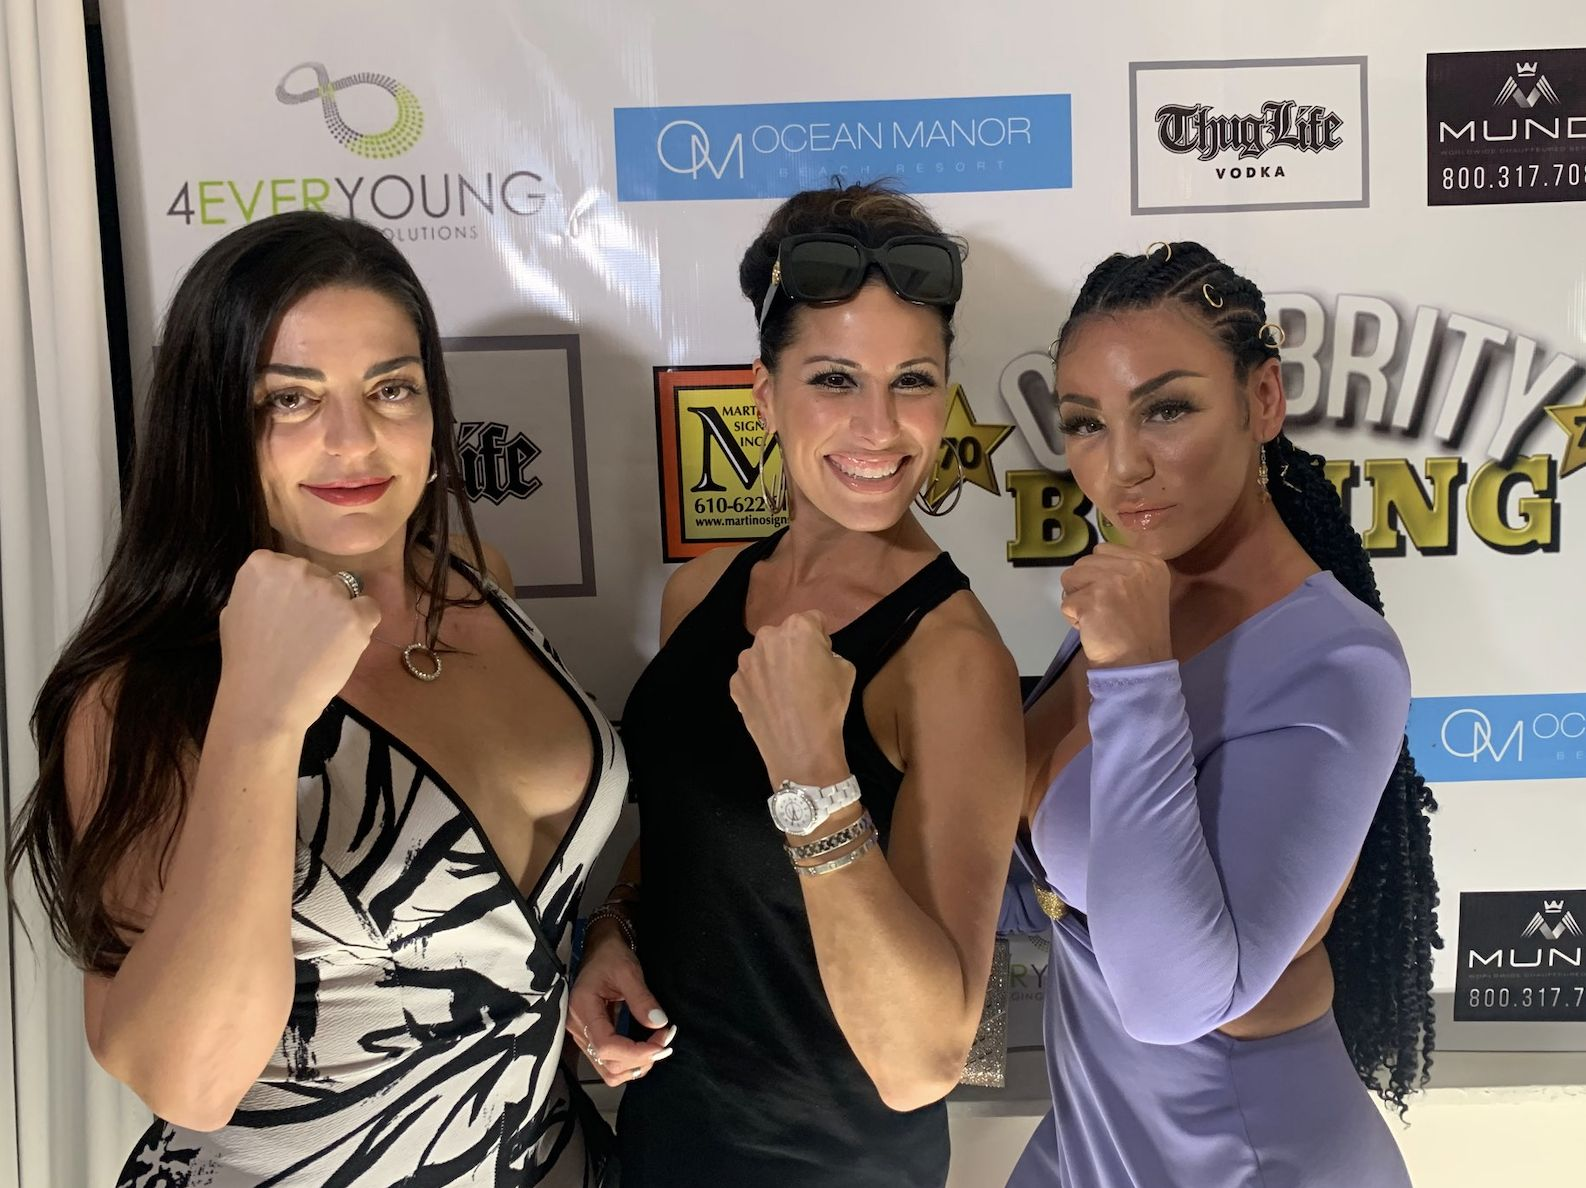 Pictured from left to right: Christine Curran from Dining Divas, Michele DiMeo, owner of Tuscan Prime, and Natalie DiDonato AKA Nat D, VH1 Mob Wives Star.